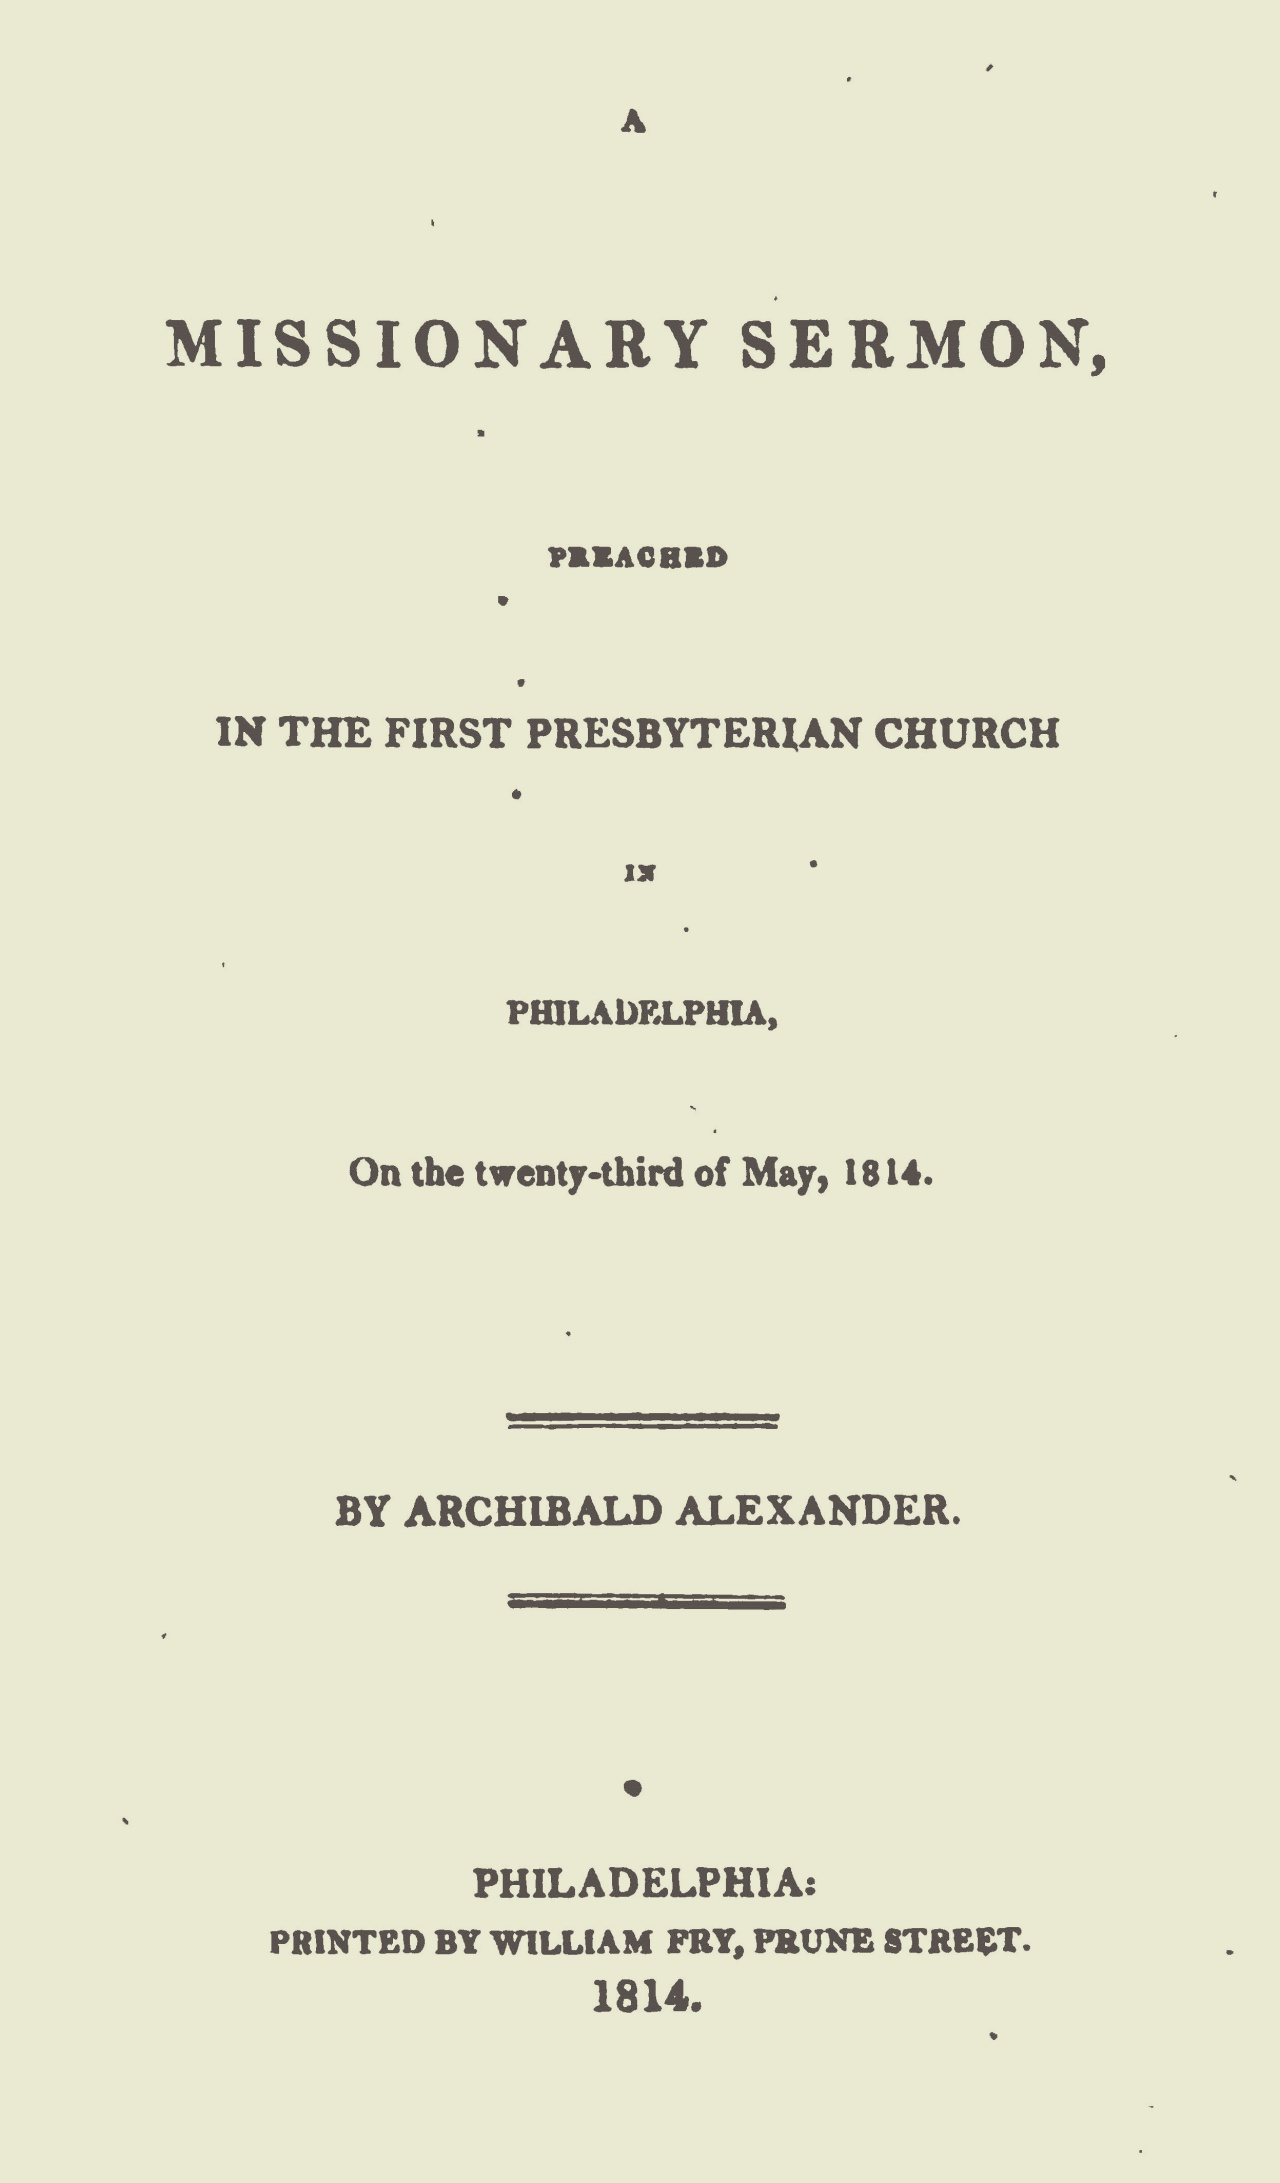 Alexander, Archibald, A Missionary Sermon Title Page.jpg